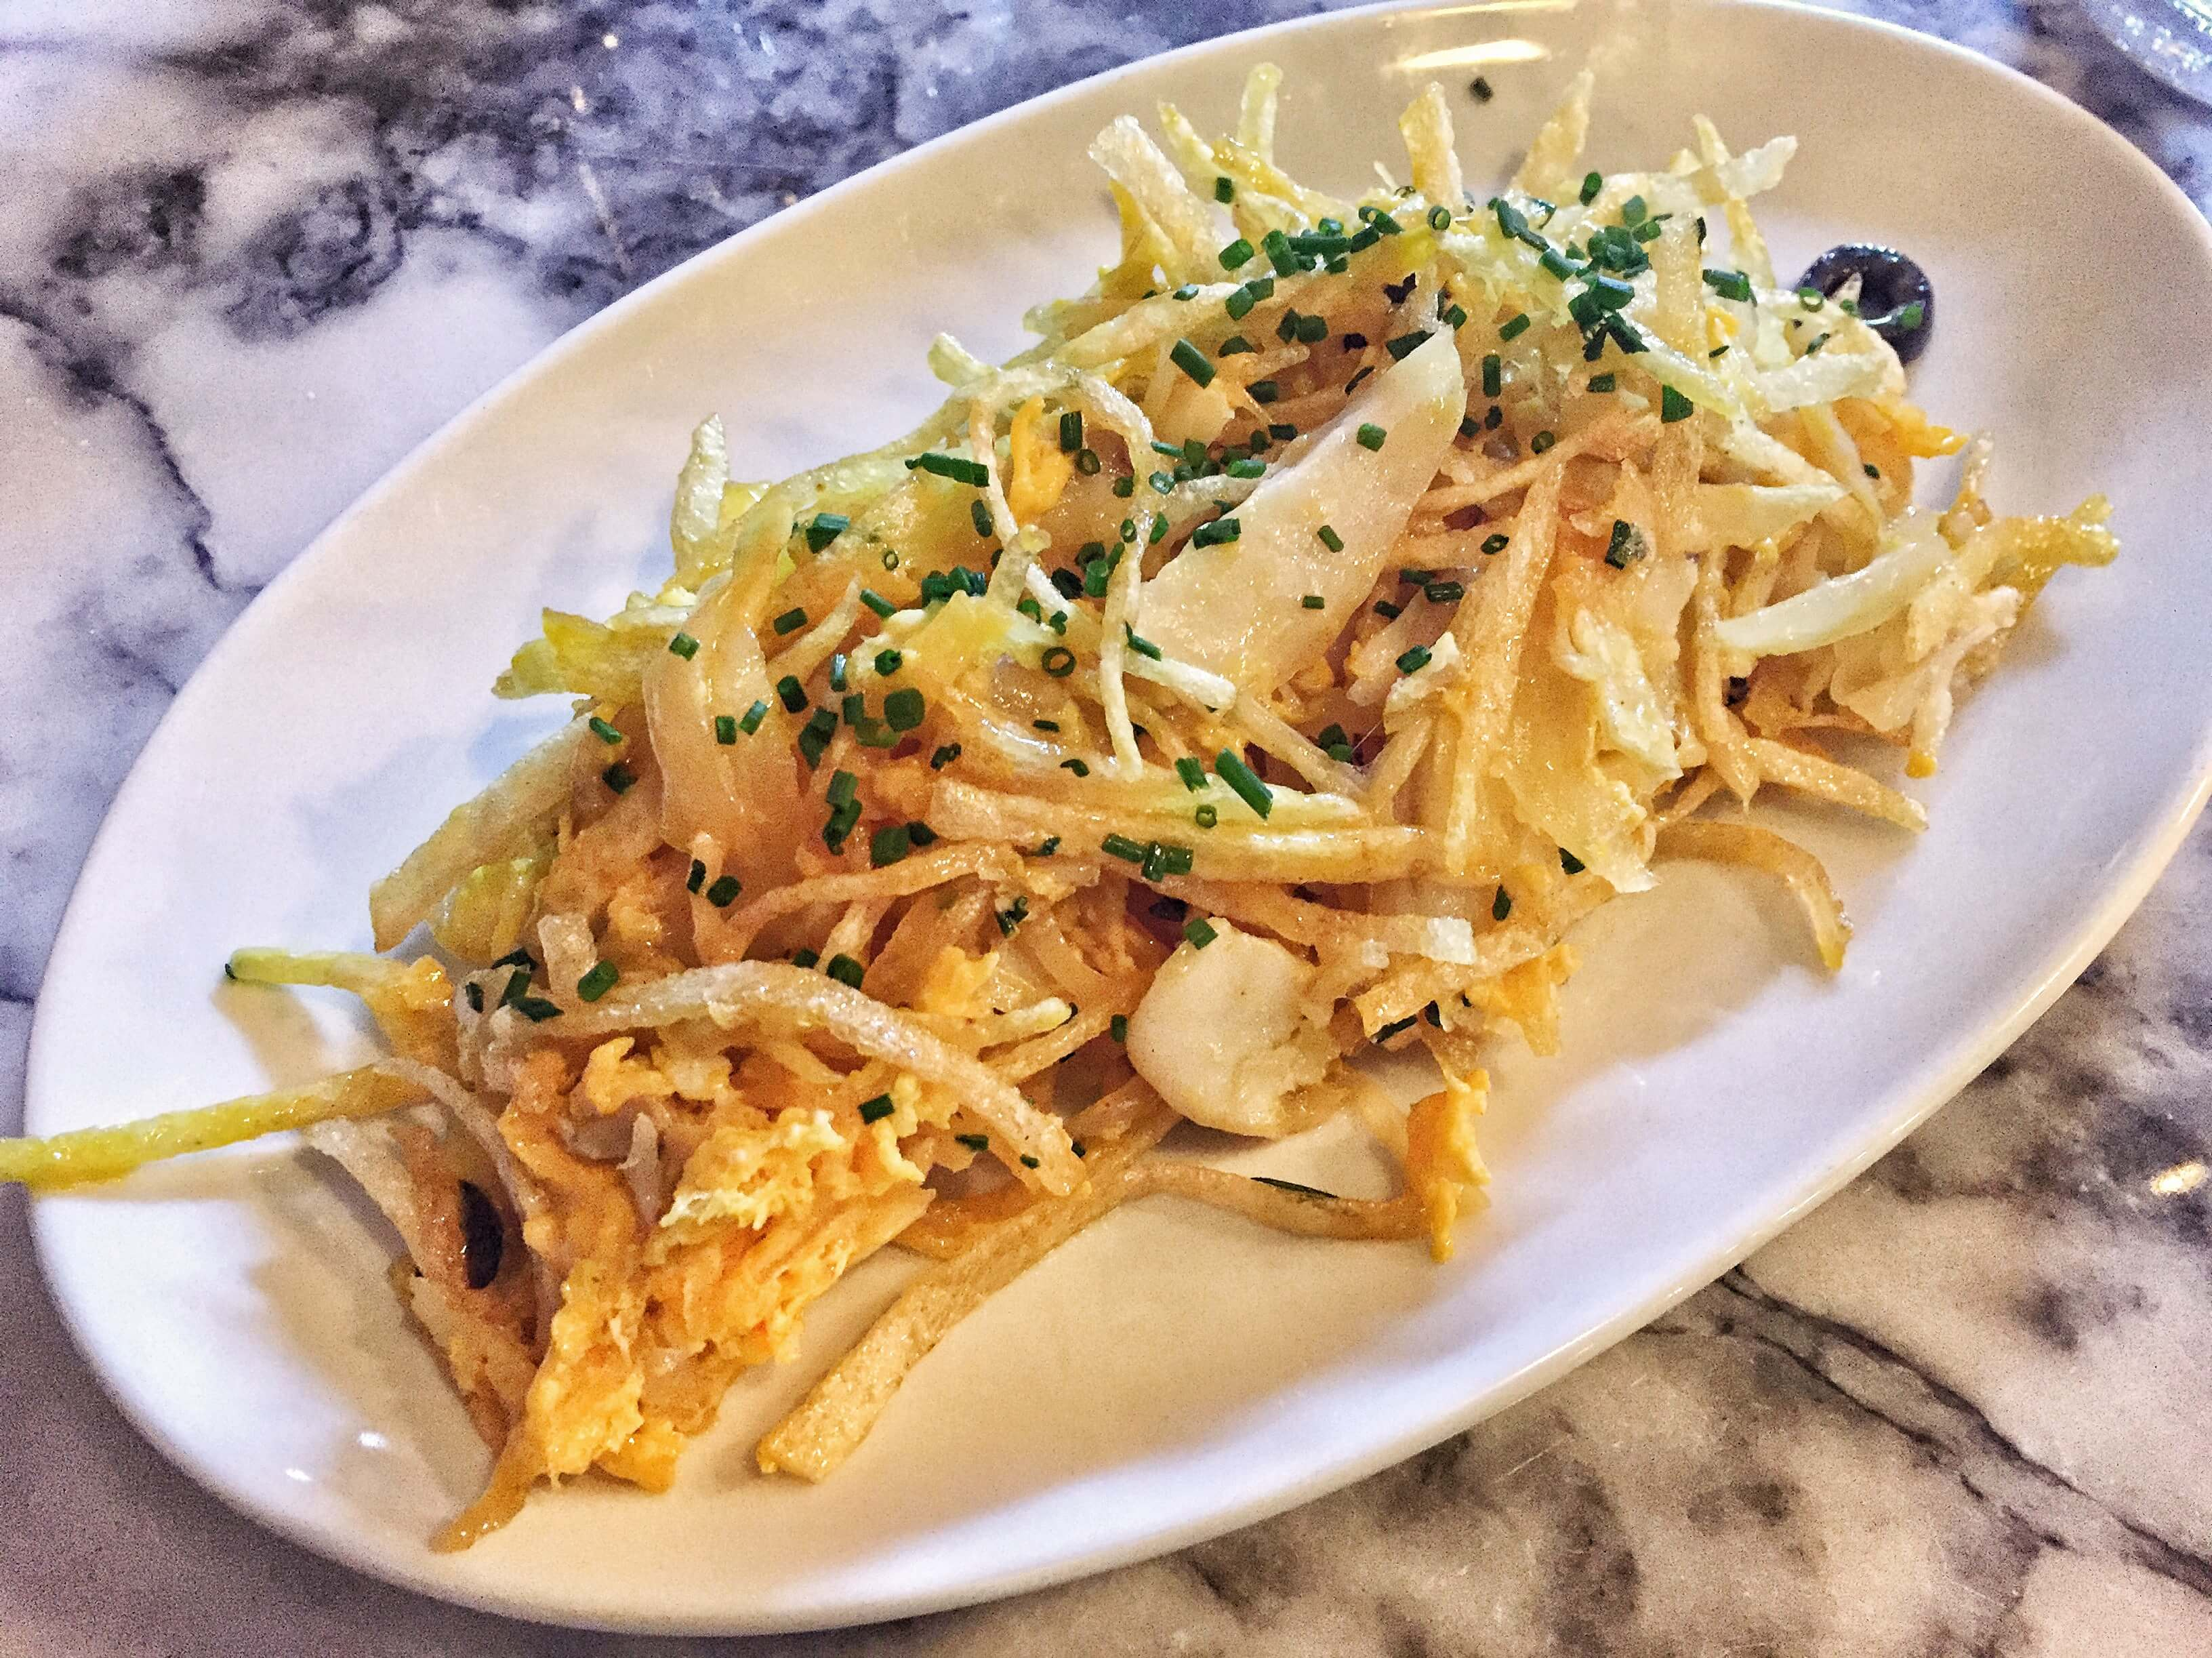 Salt cod and scrambled egg with matchstick fries at Bar Douro, London Bridge, London